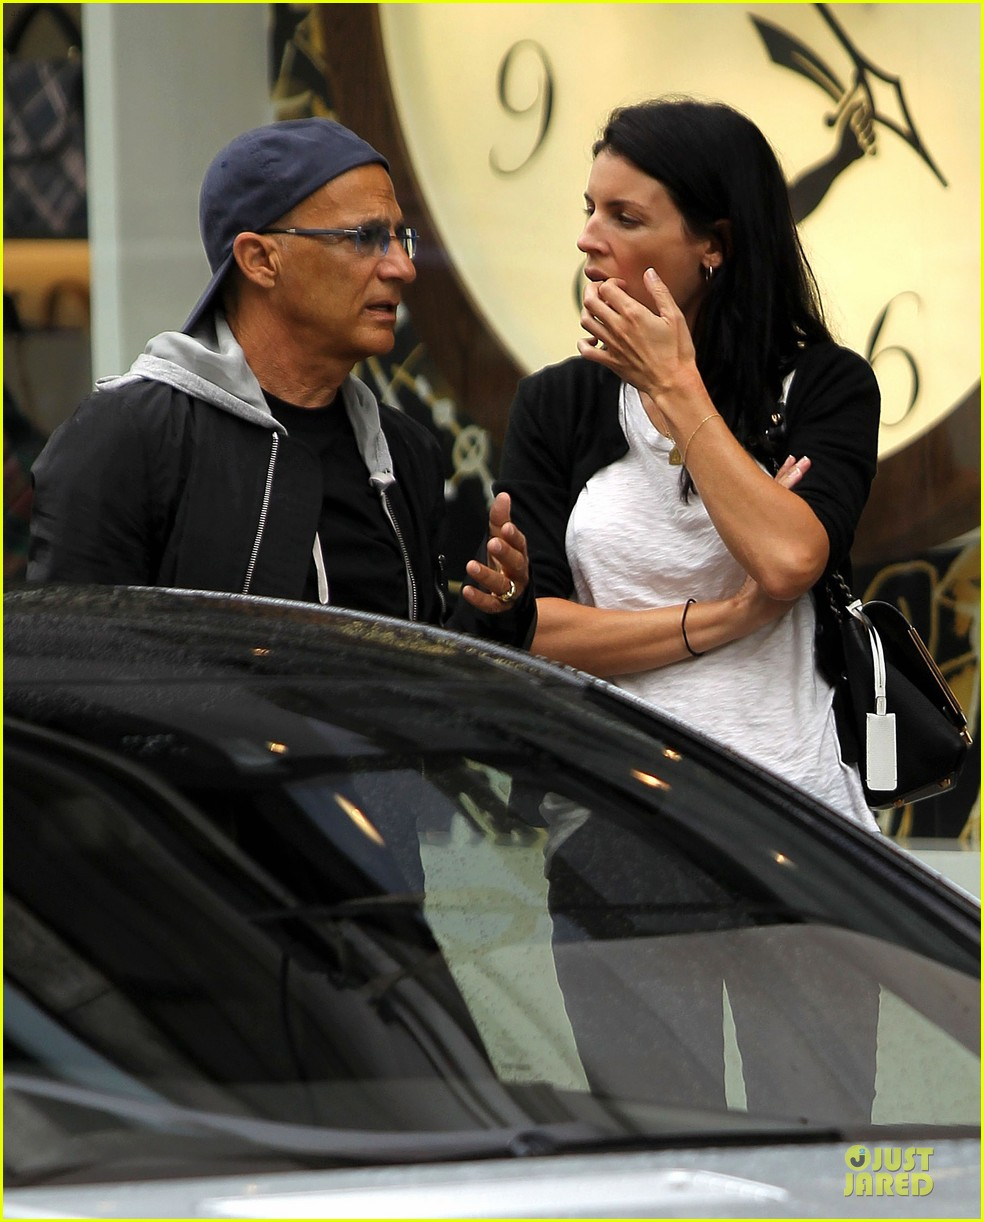 liberty ross jimmy iovine oxford street shopping pair 022920259